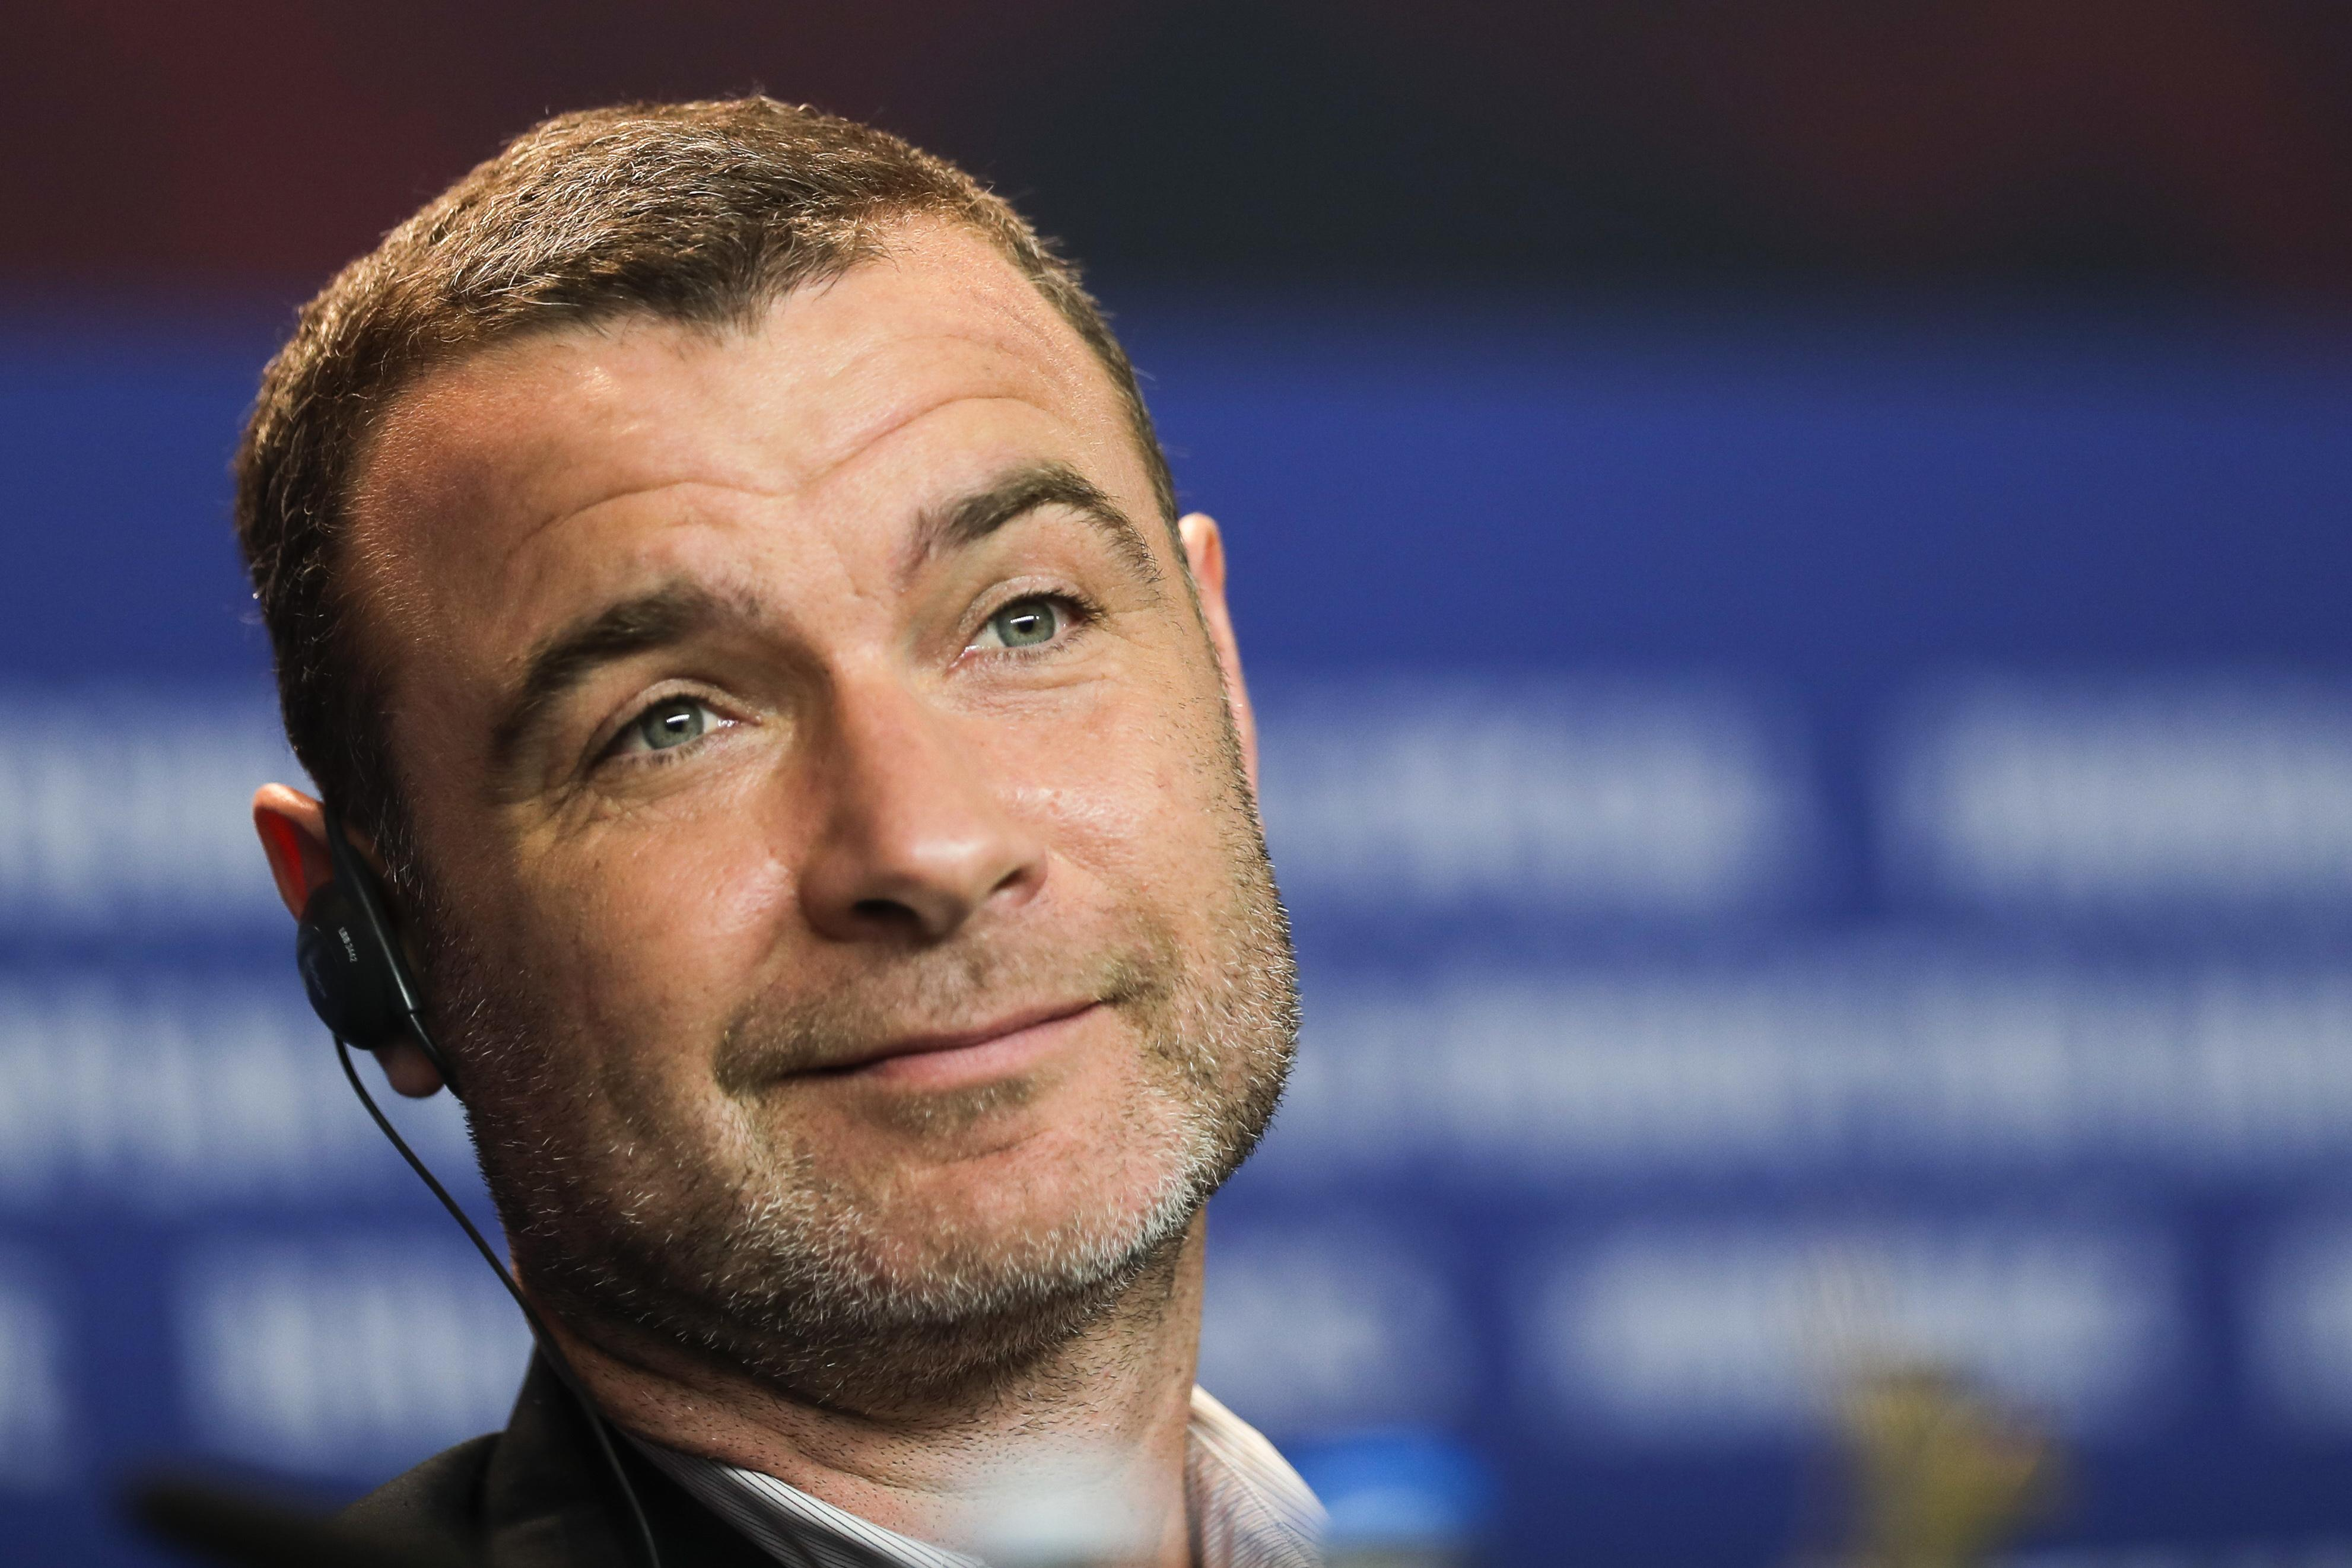 Actor Liev Schreiber faces harassment charge after ...